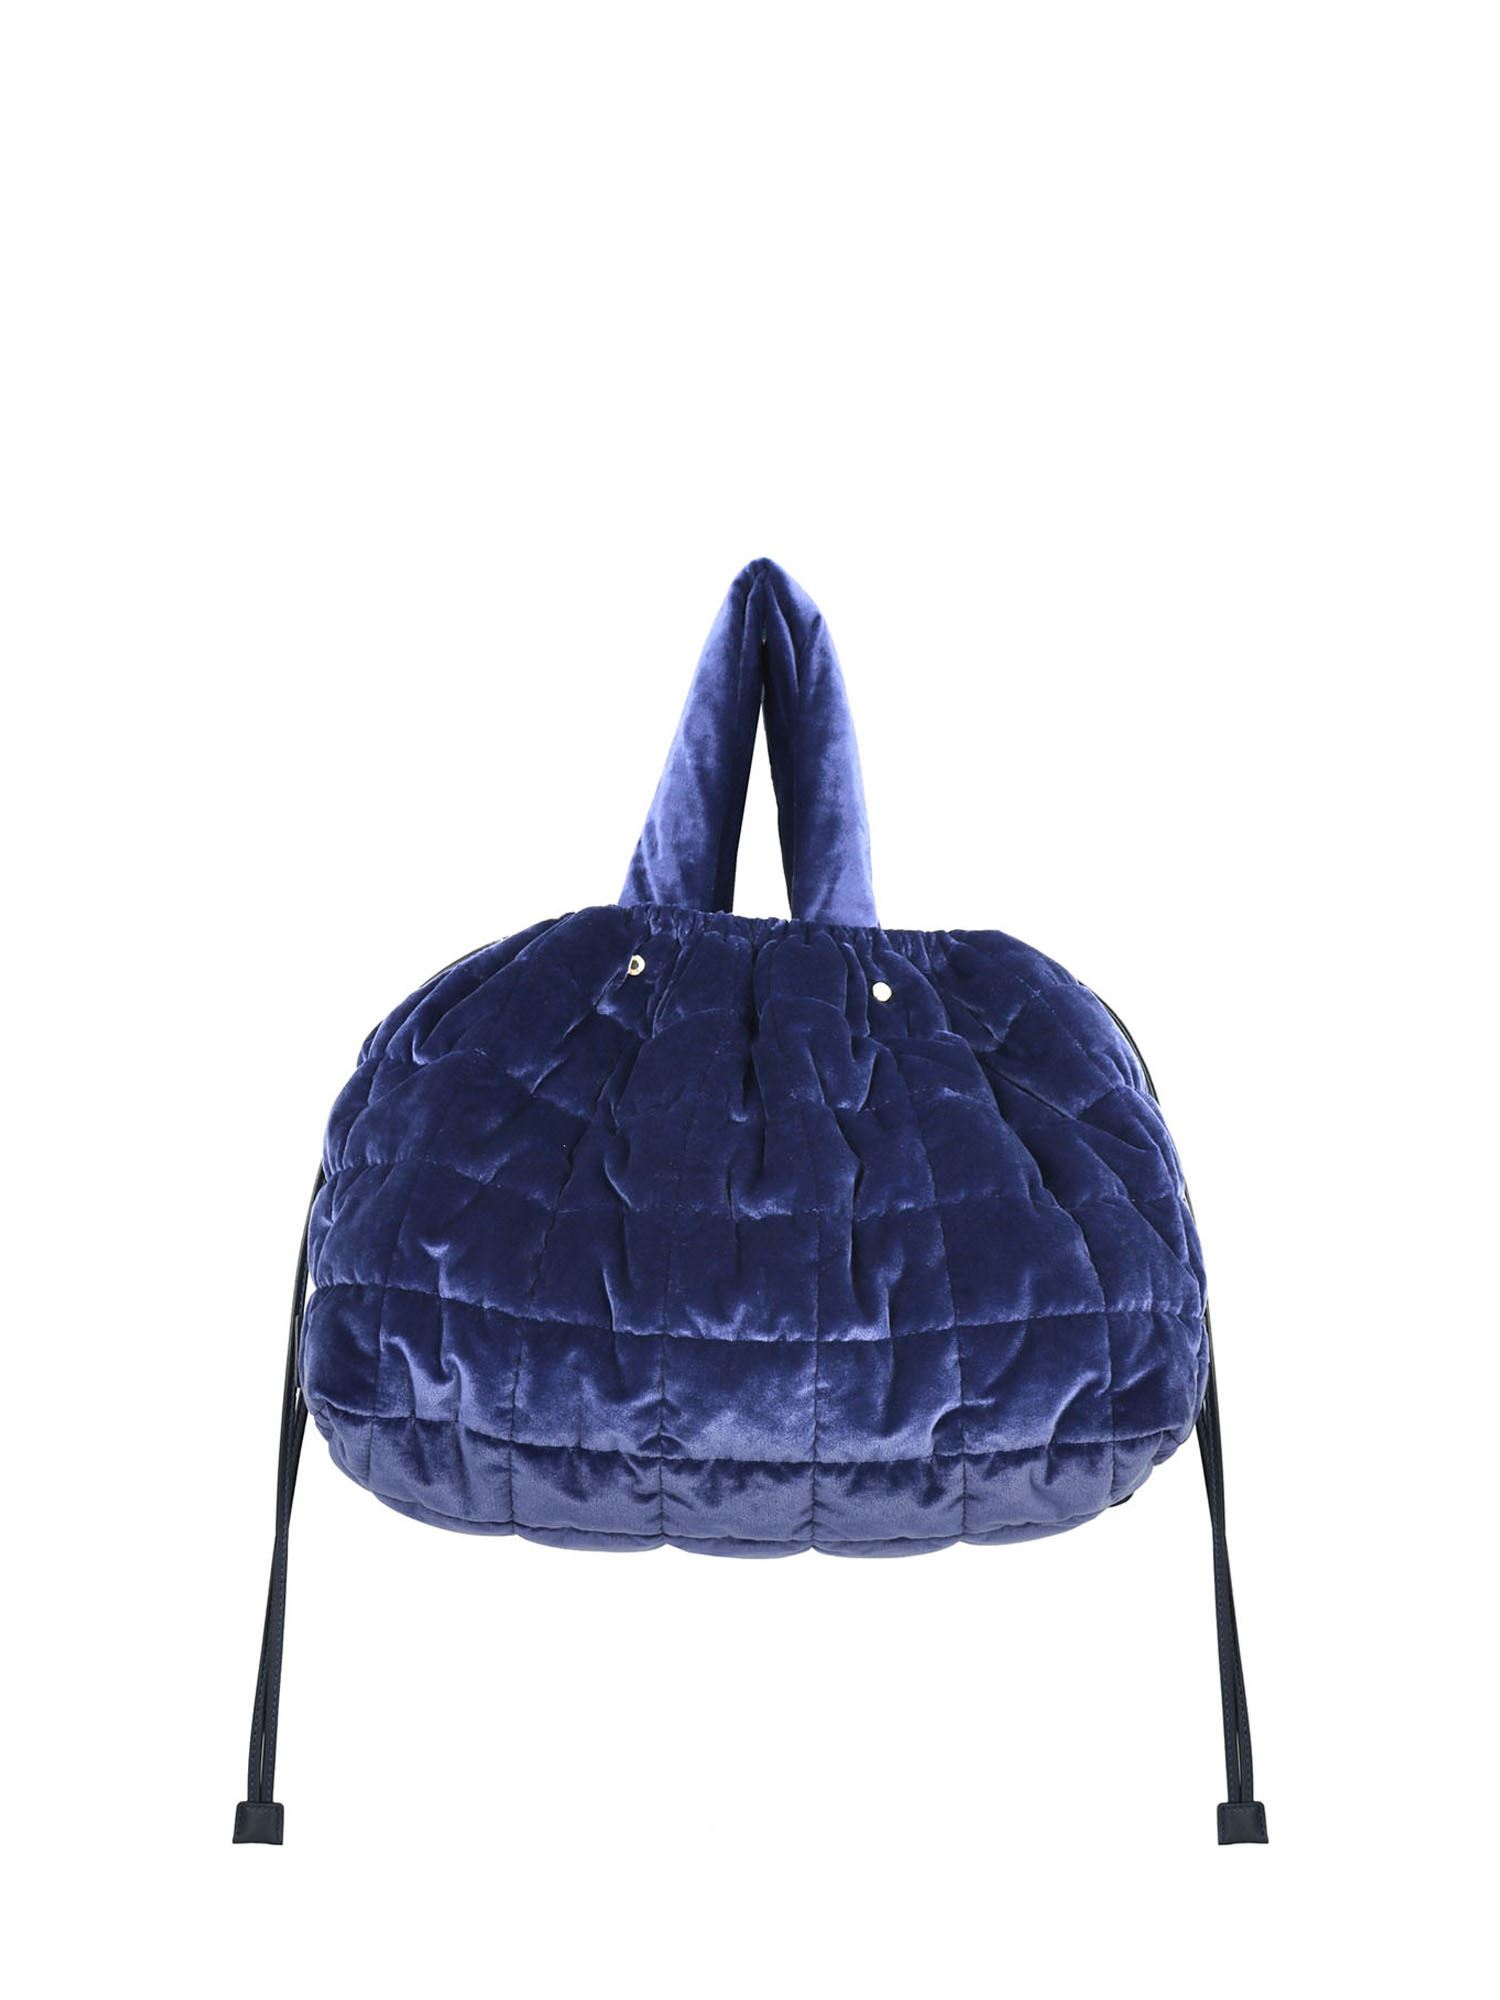 Aspesi VELVET HANDBAG IN BLUE